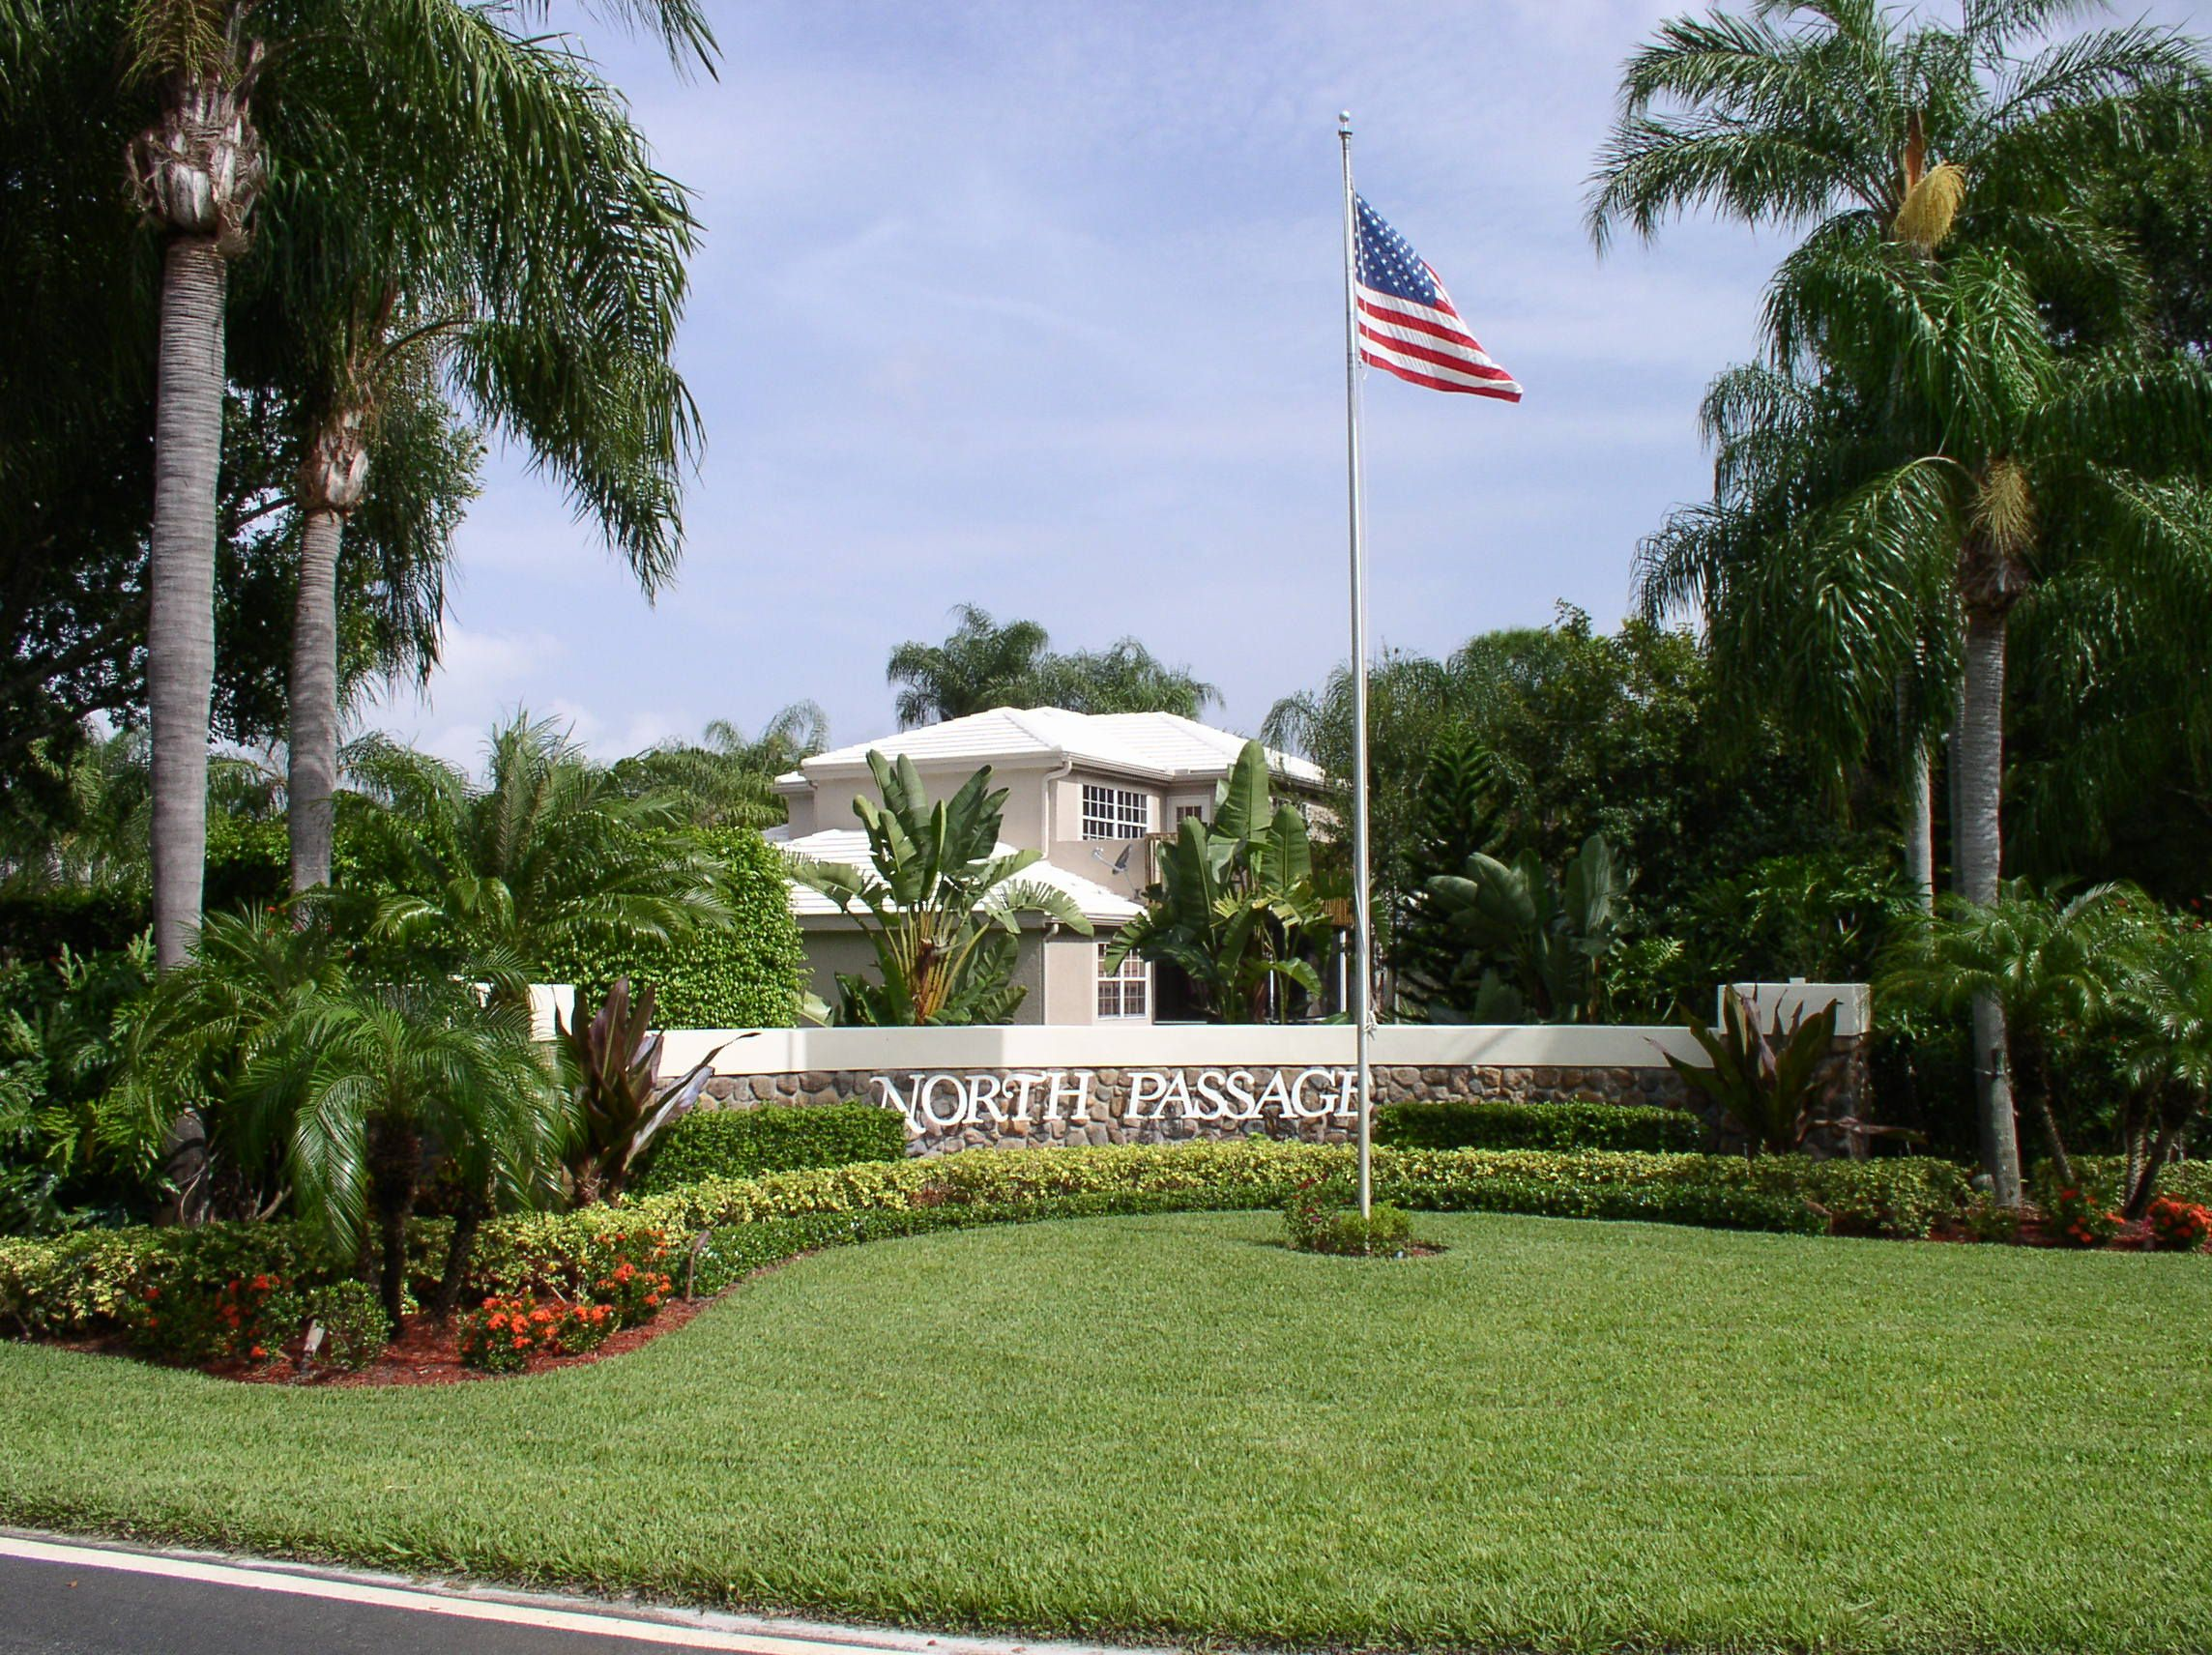 d782a54e452016ef7b0cdcf14d3972e6 - Palm Beach Gardens Cost Of Living